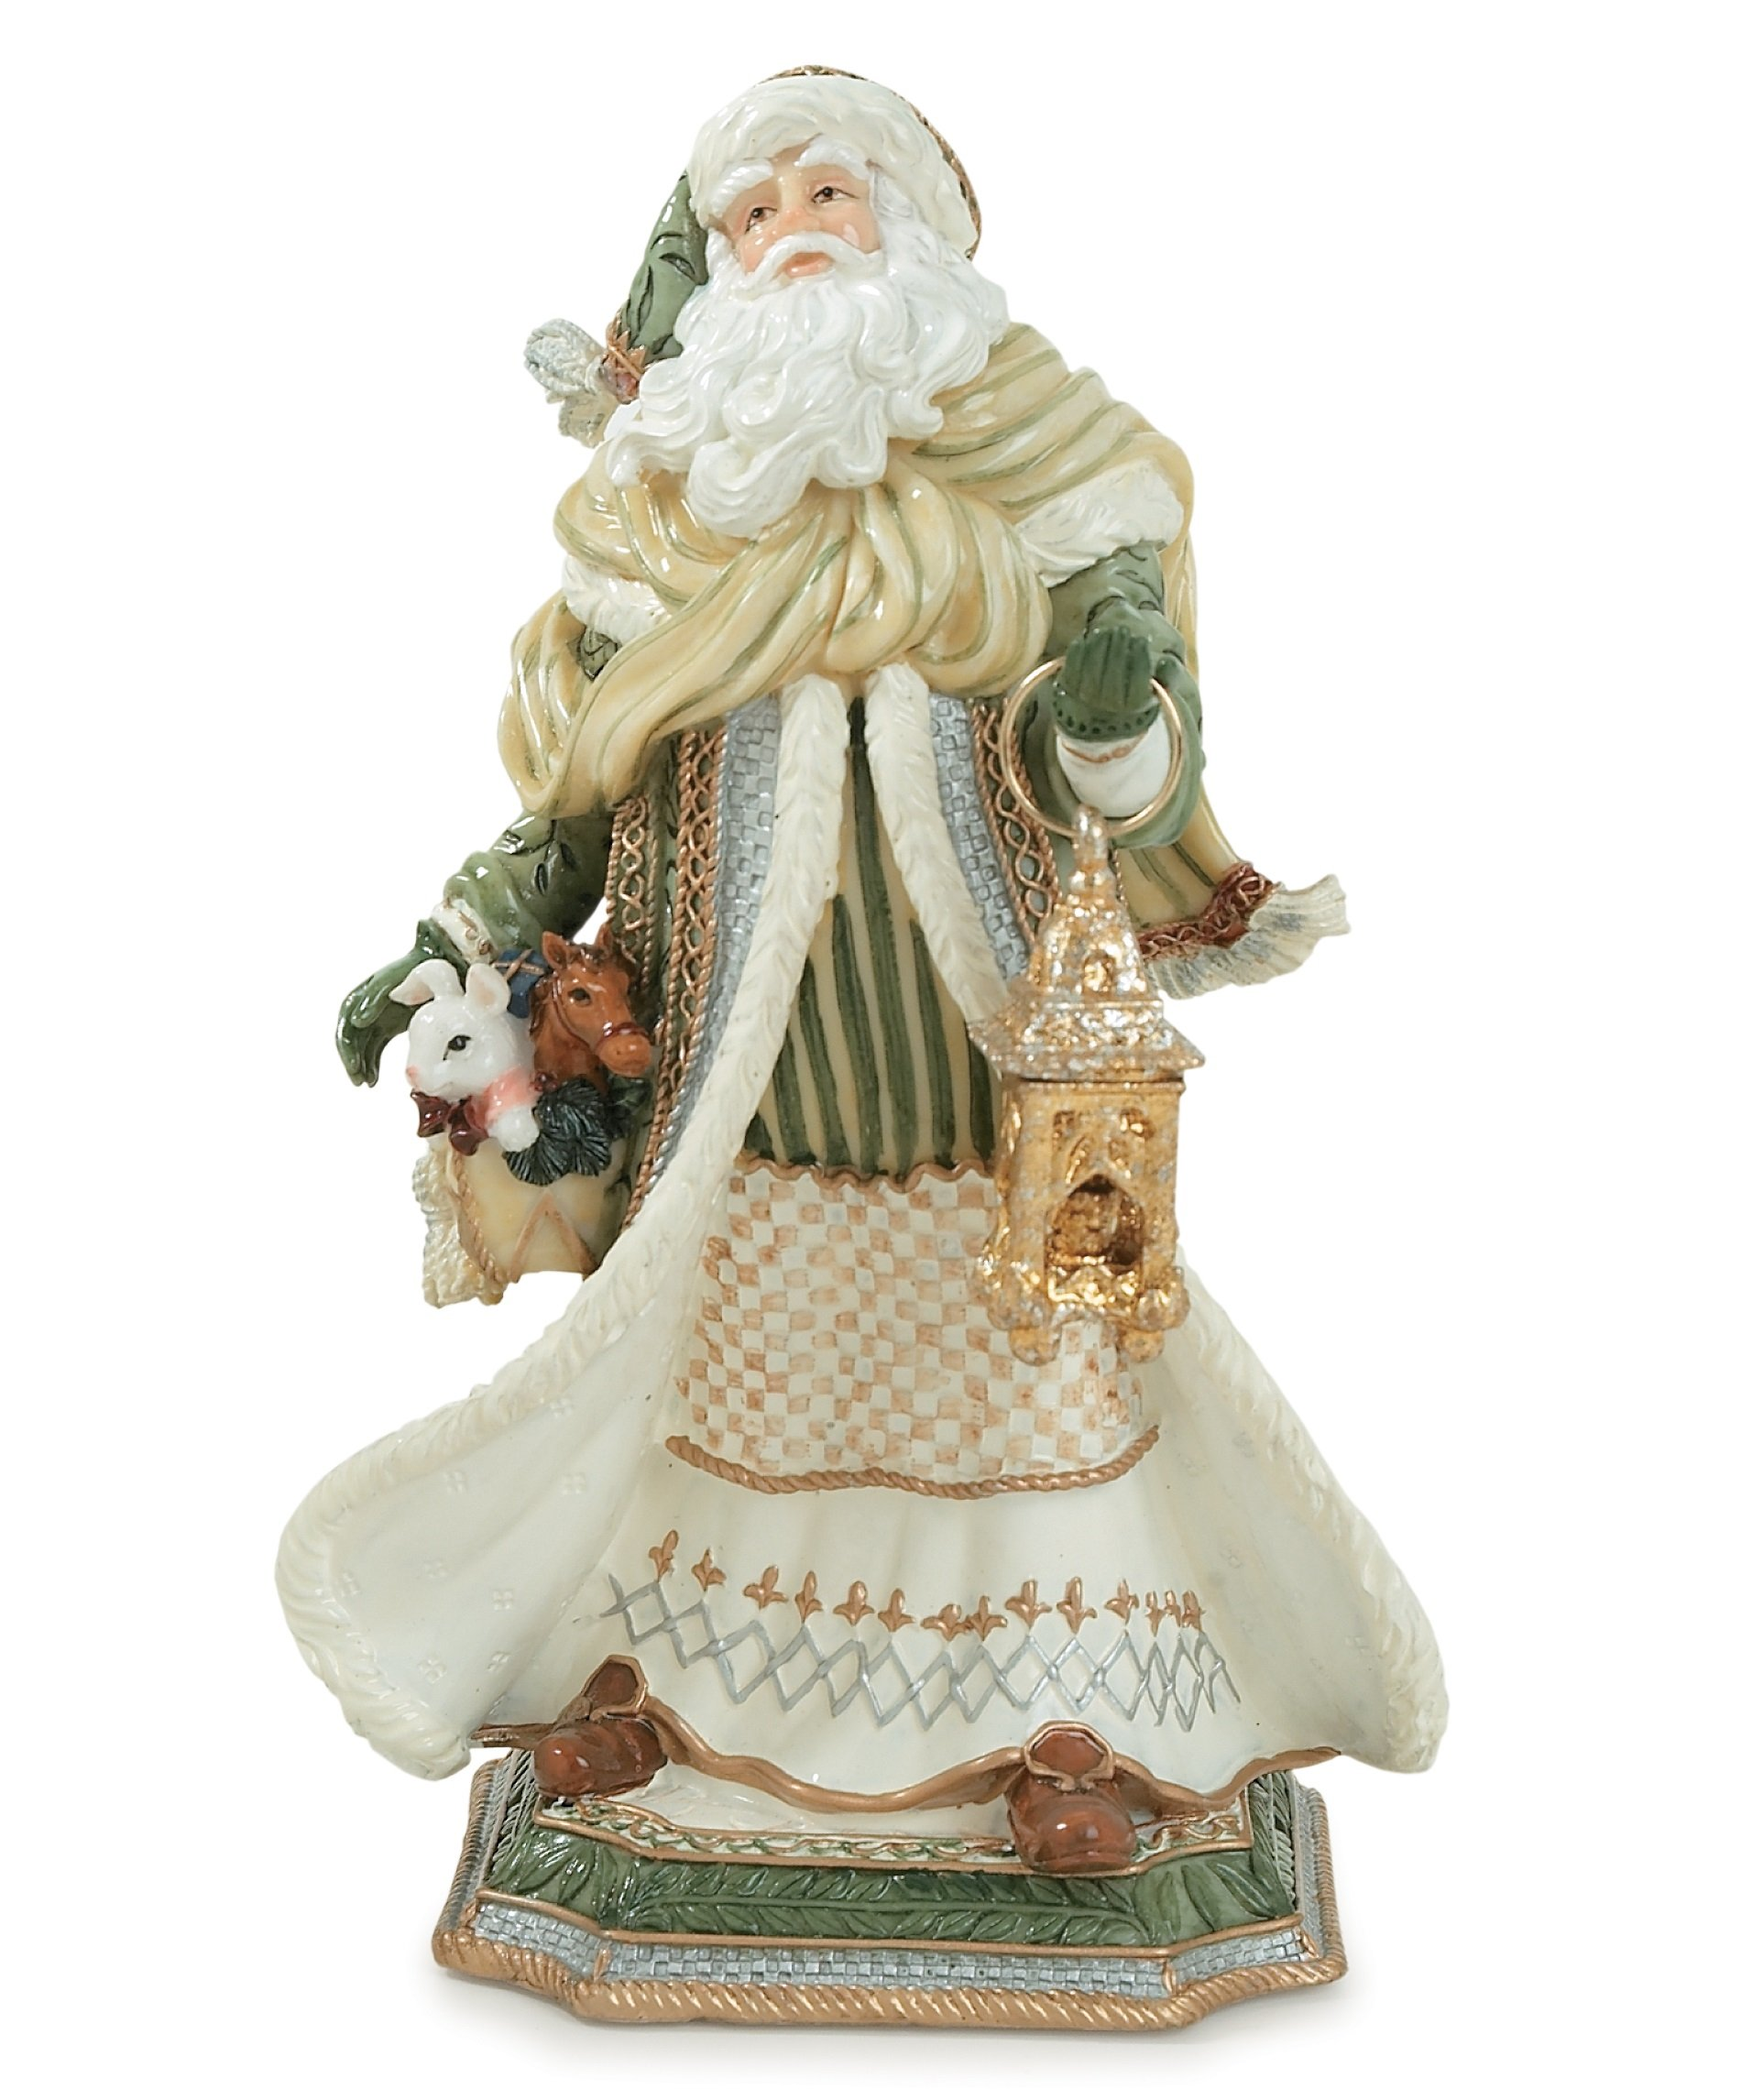 Georgian Holiday Collection, Santa Figurine, Large by Fitz and Floyd